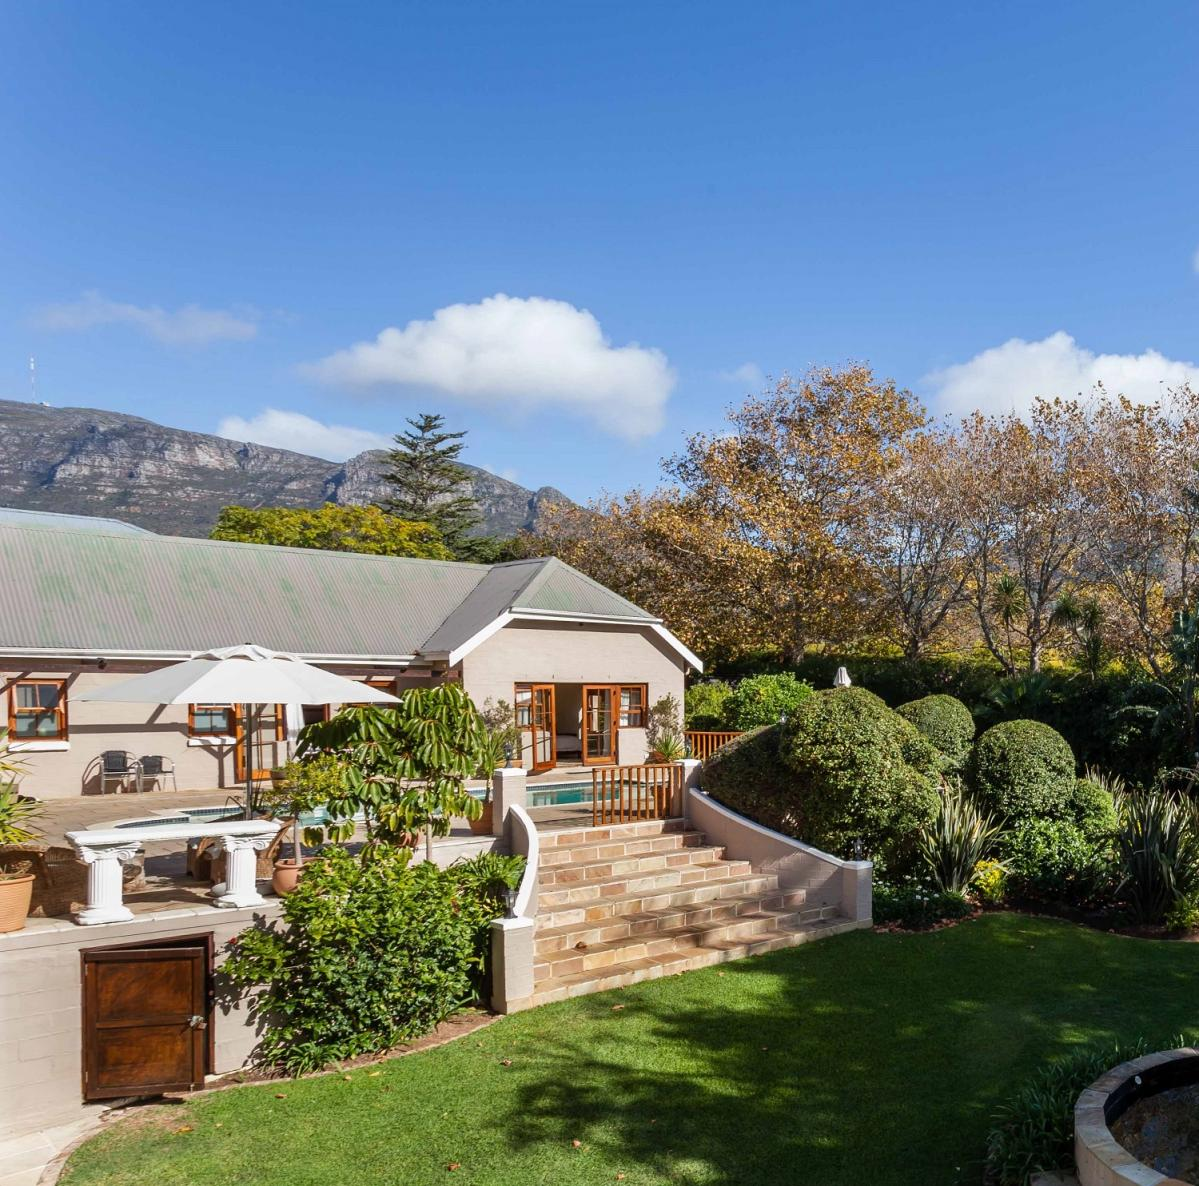 9 Bedroom house for sale in Constantia